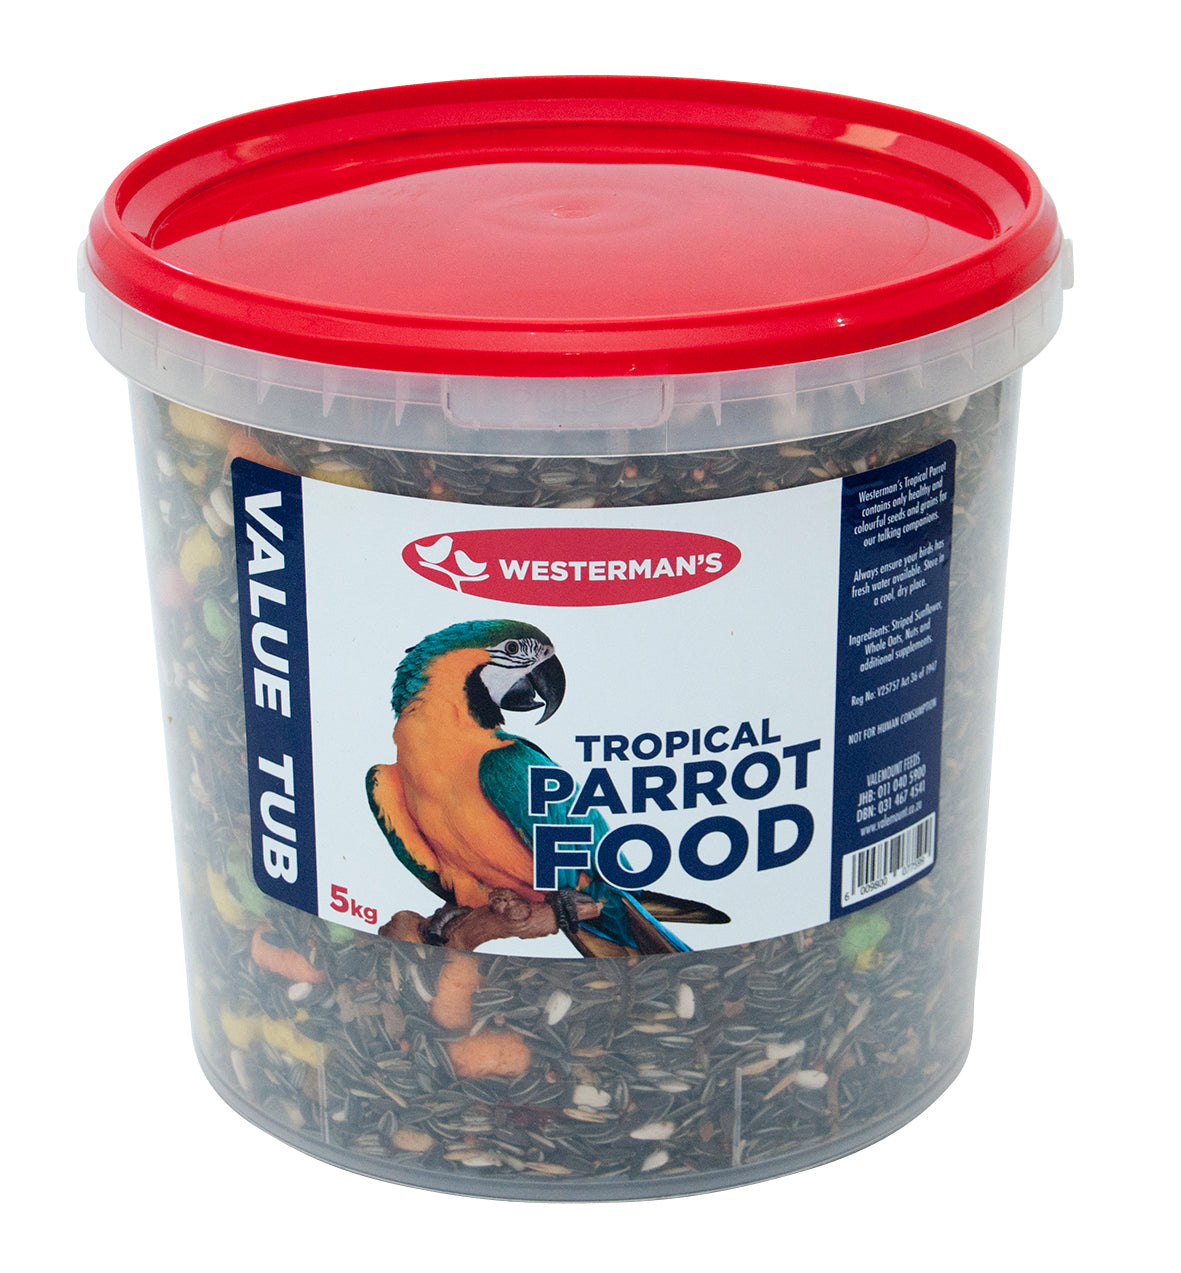 Tropical Parrot Food - Westermans -Value Tub - 5kg - Woofworths Premium Online Pet Supplies